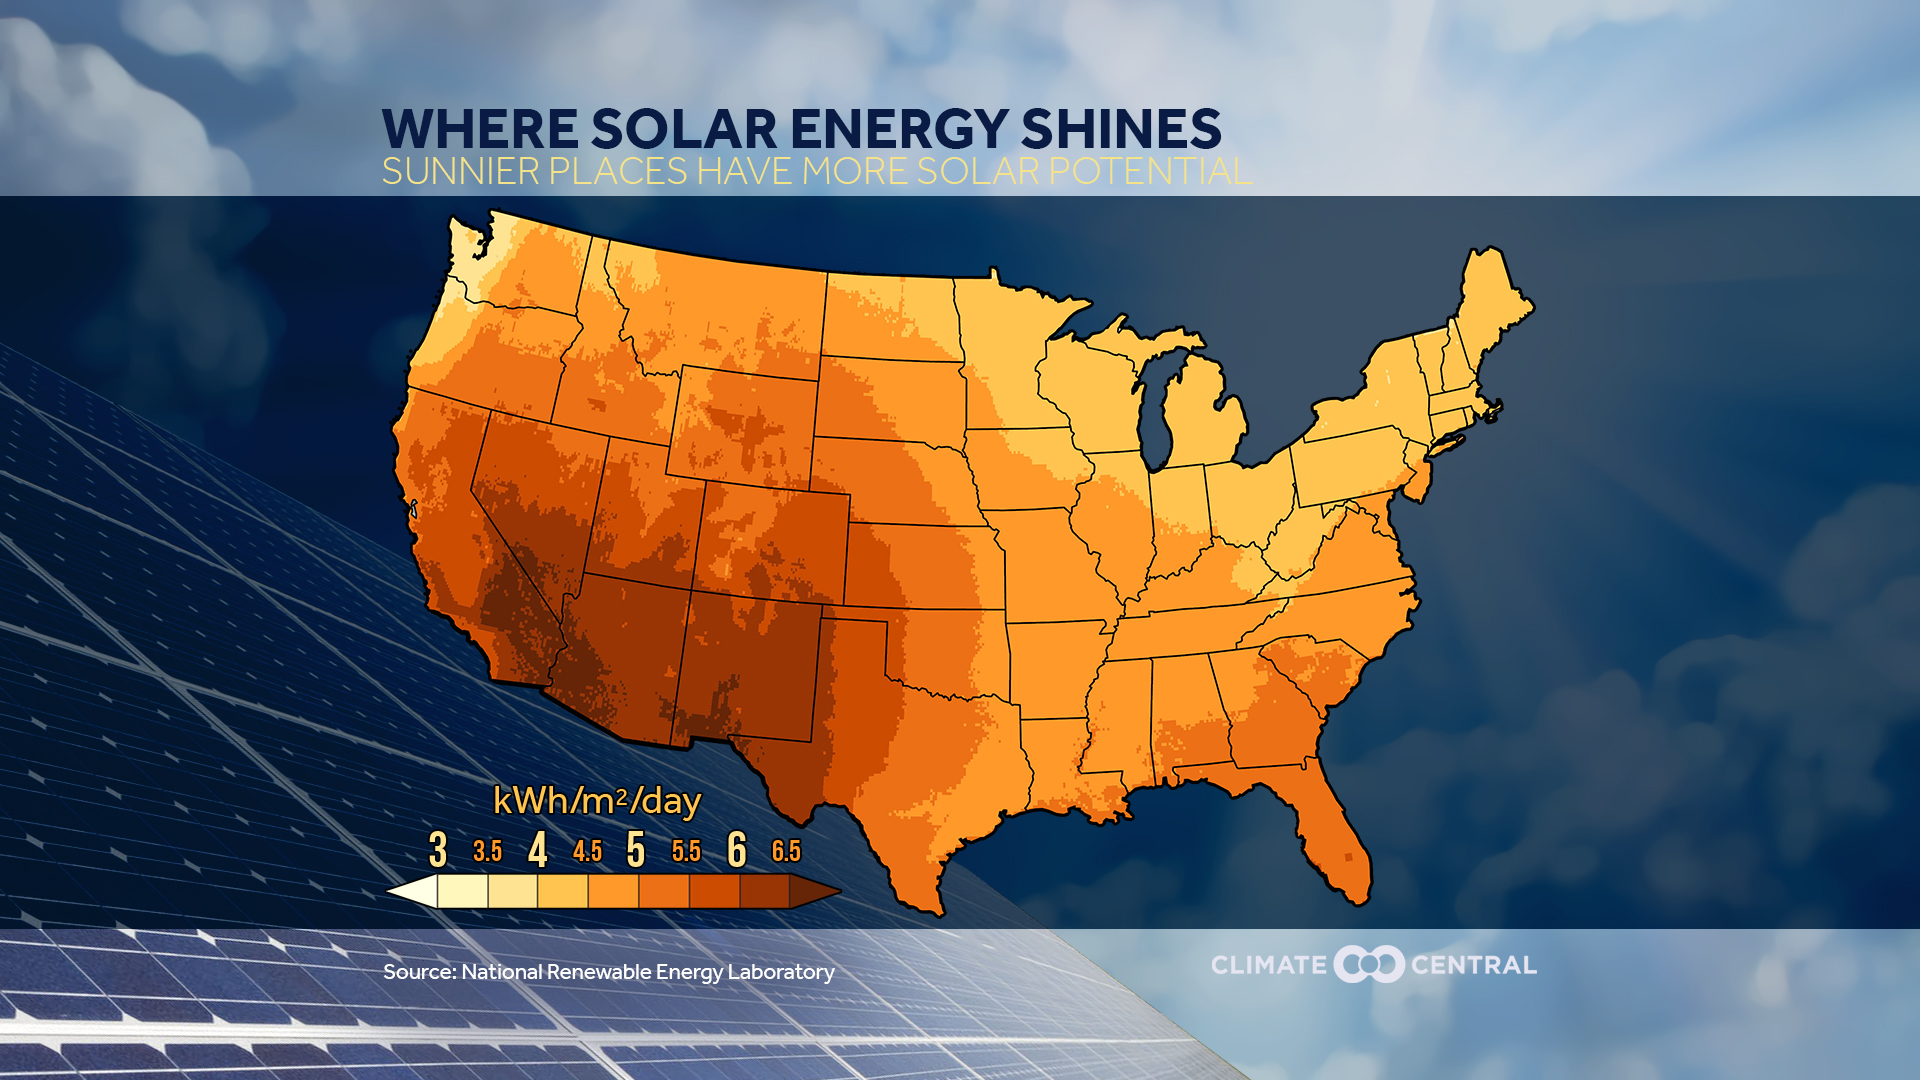 Heres Where Solar Energy Shines In The US Climate Central - Us solar map